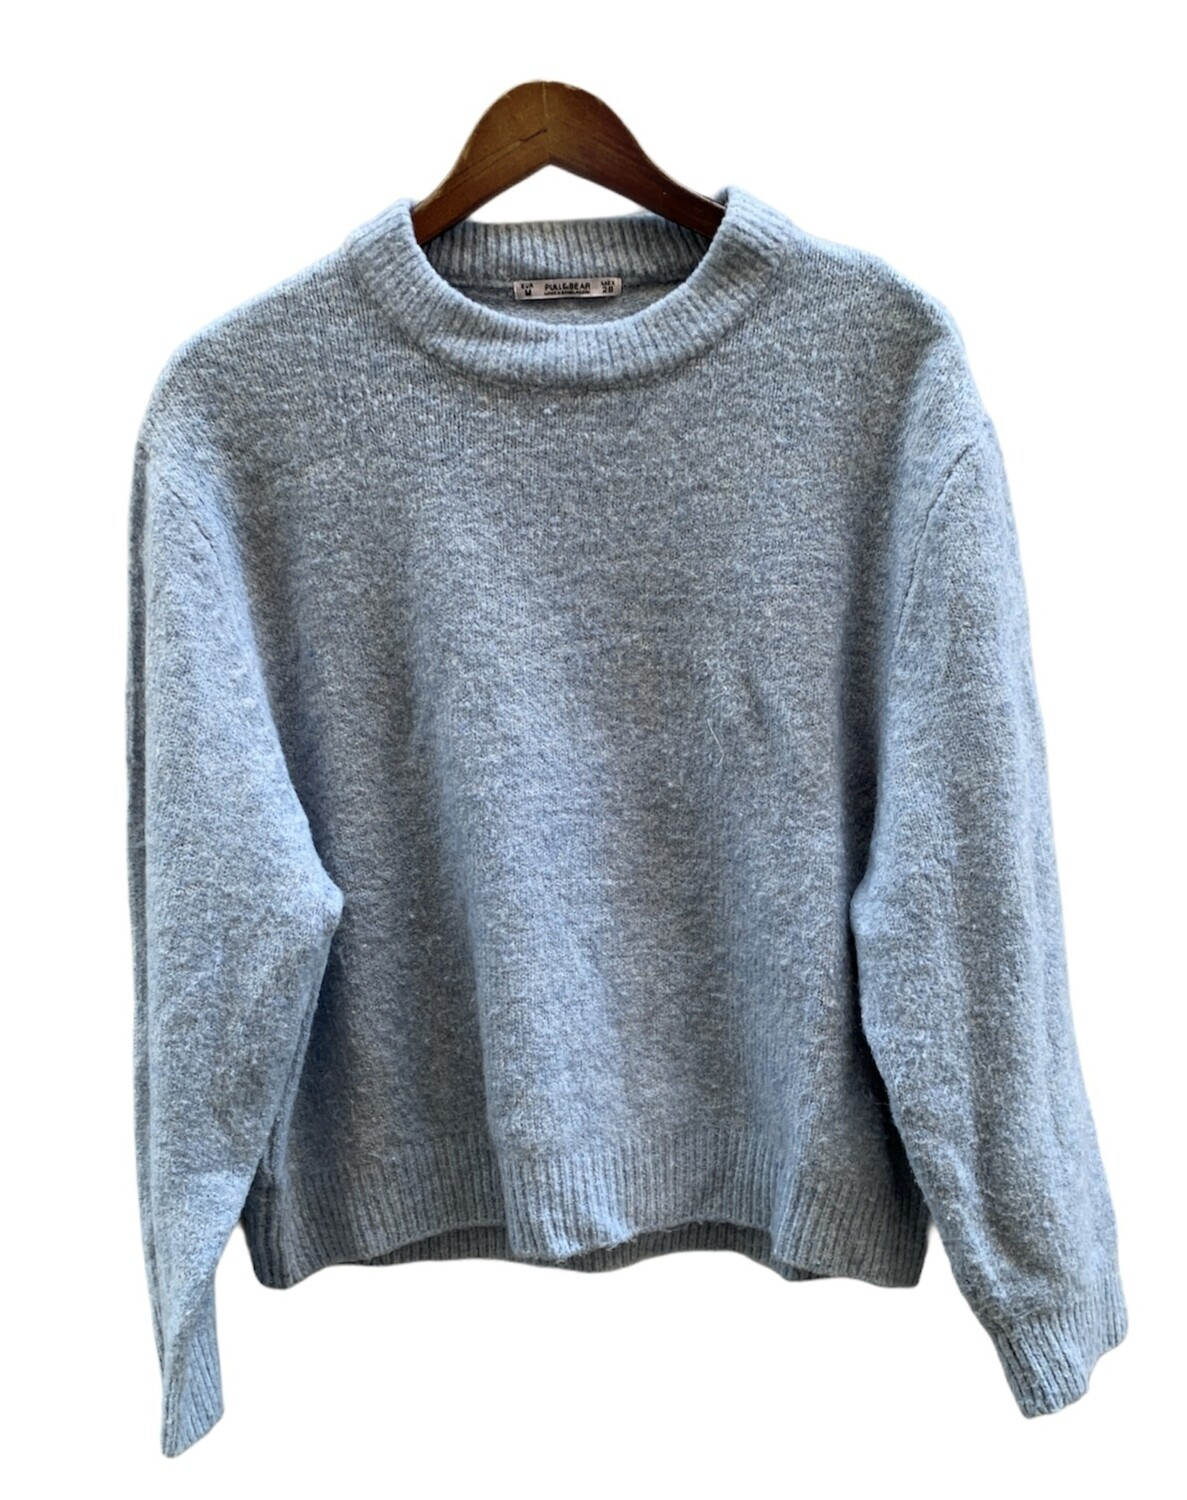 "Sweater abrigago basic ""PULL&BEAR"""